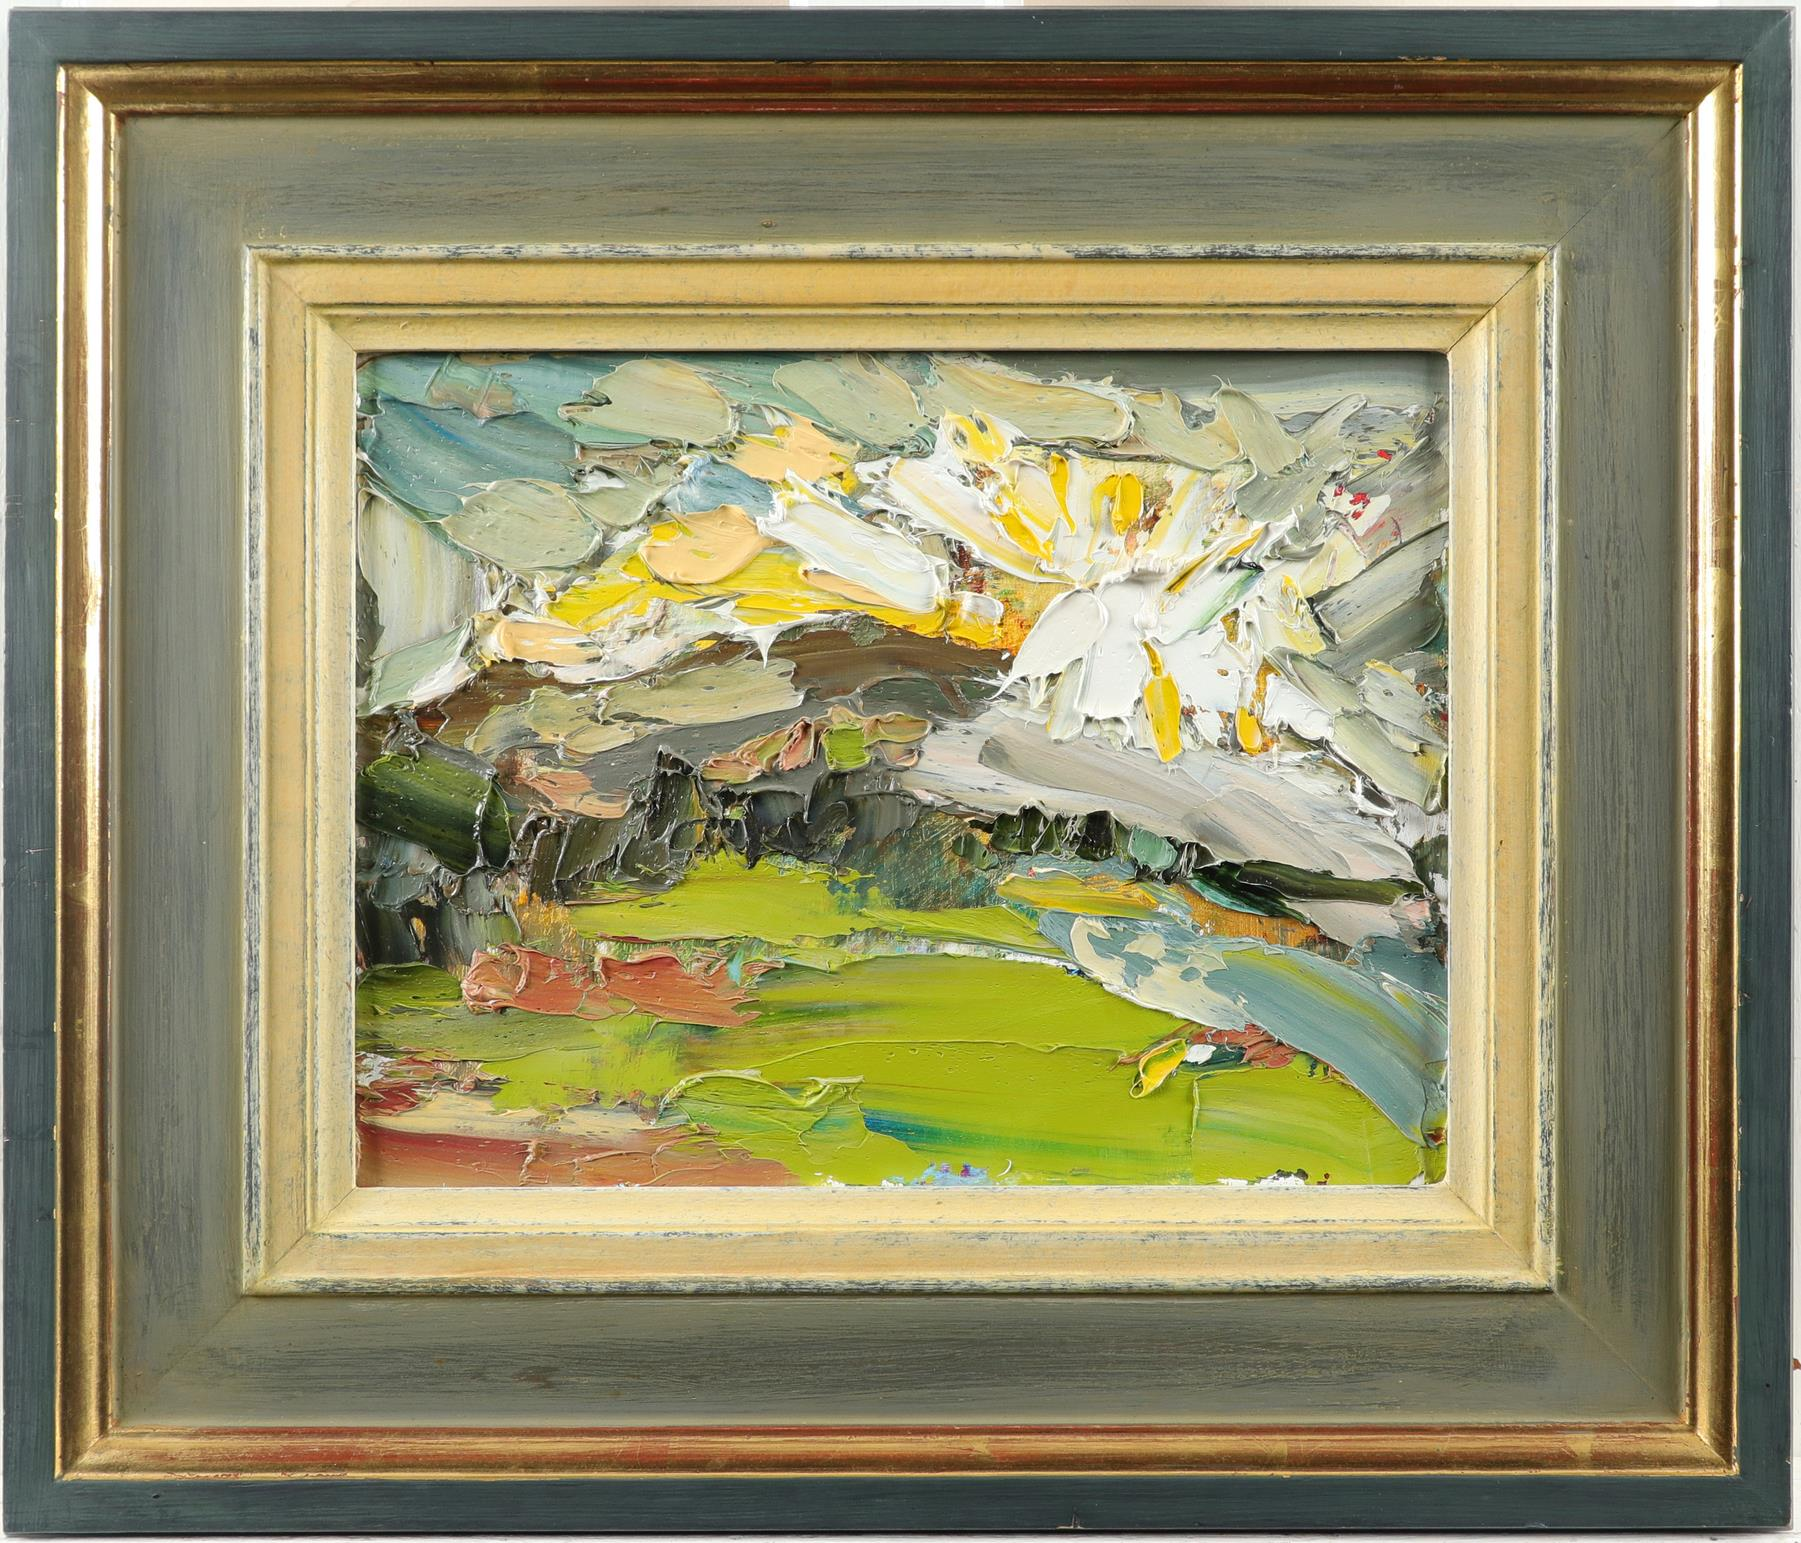 ‡Veronica Gibson (b.1954) Sunburst Signed, dated and inscribed Veronica Gibson/1.2.03/'SUNBURST' (to - Image 2 of 3